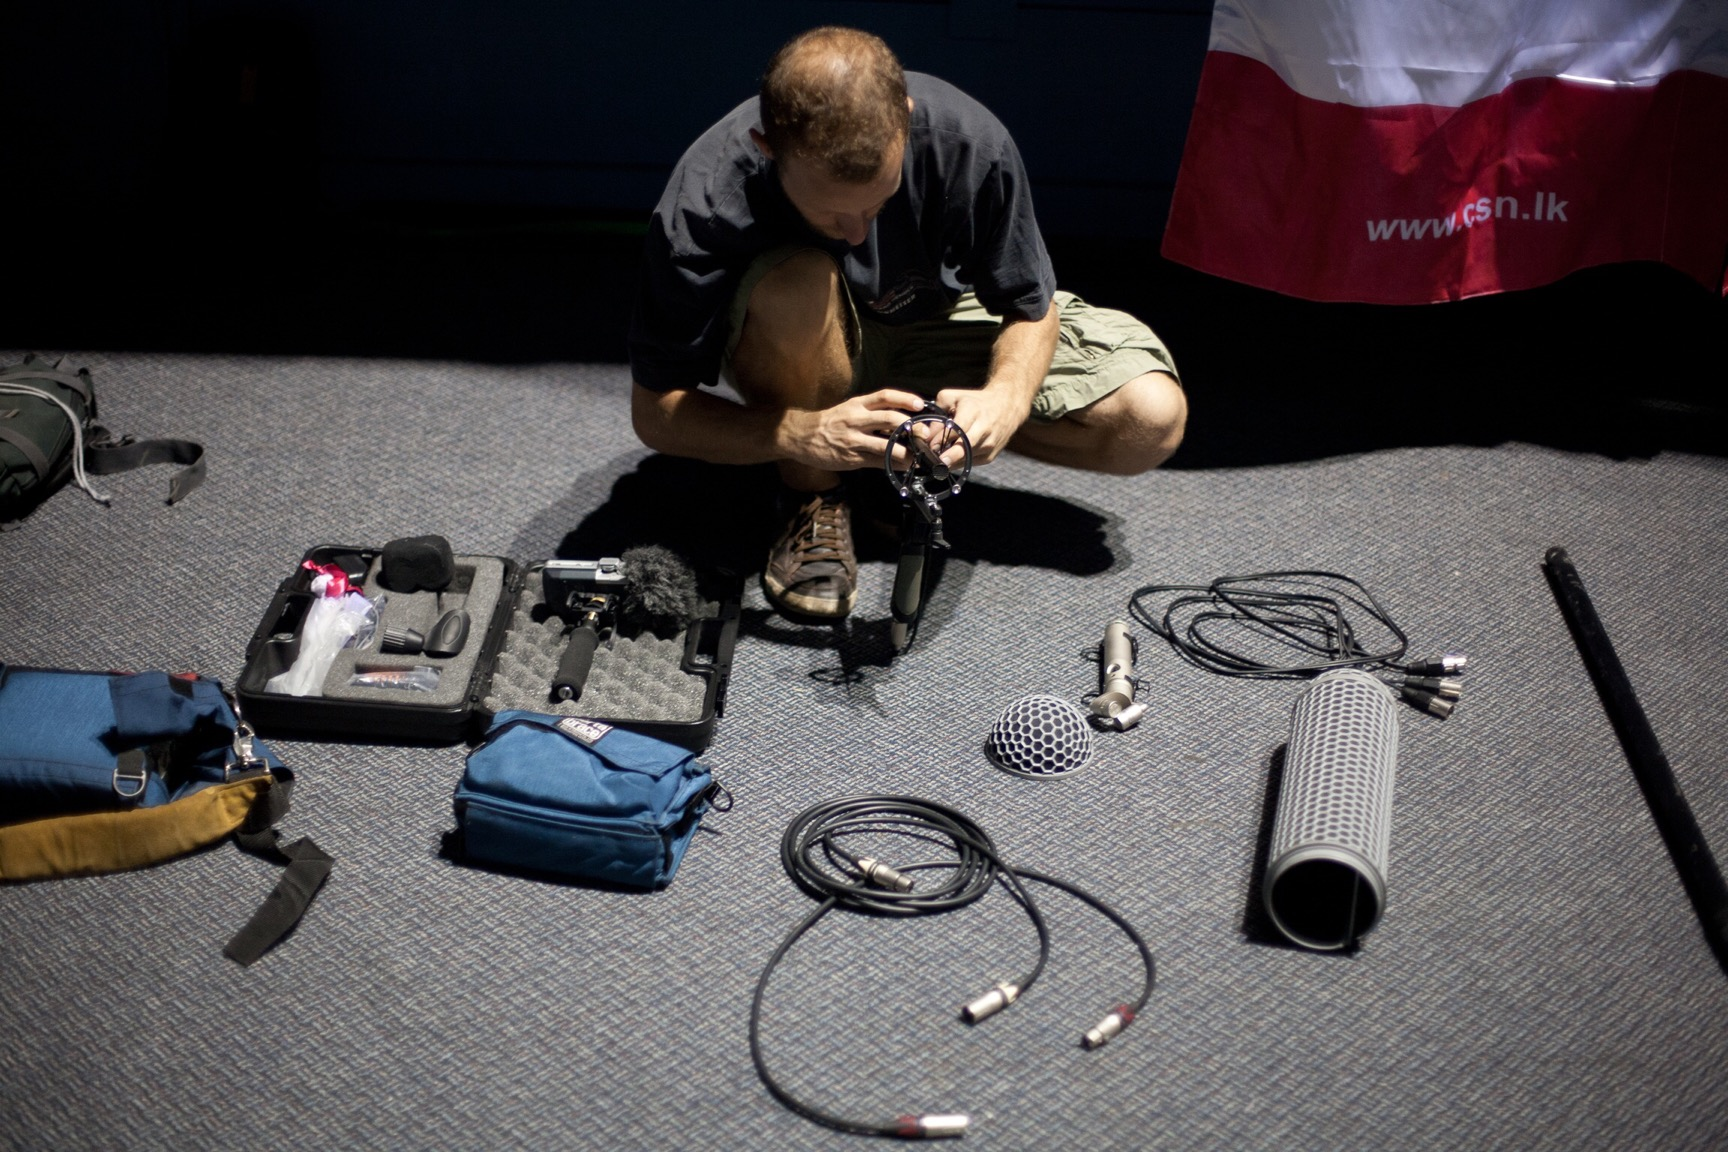 Sound effects recording gear prep (© Lee Bazalgette)